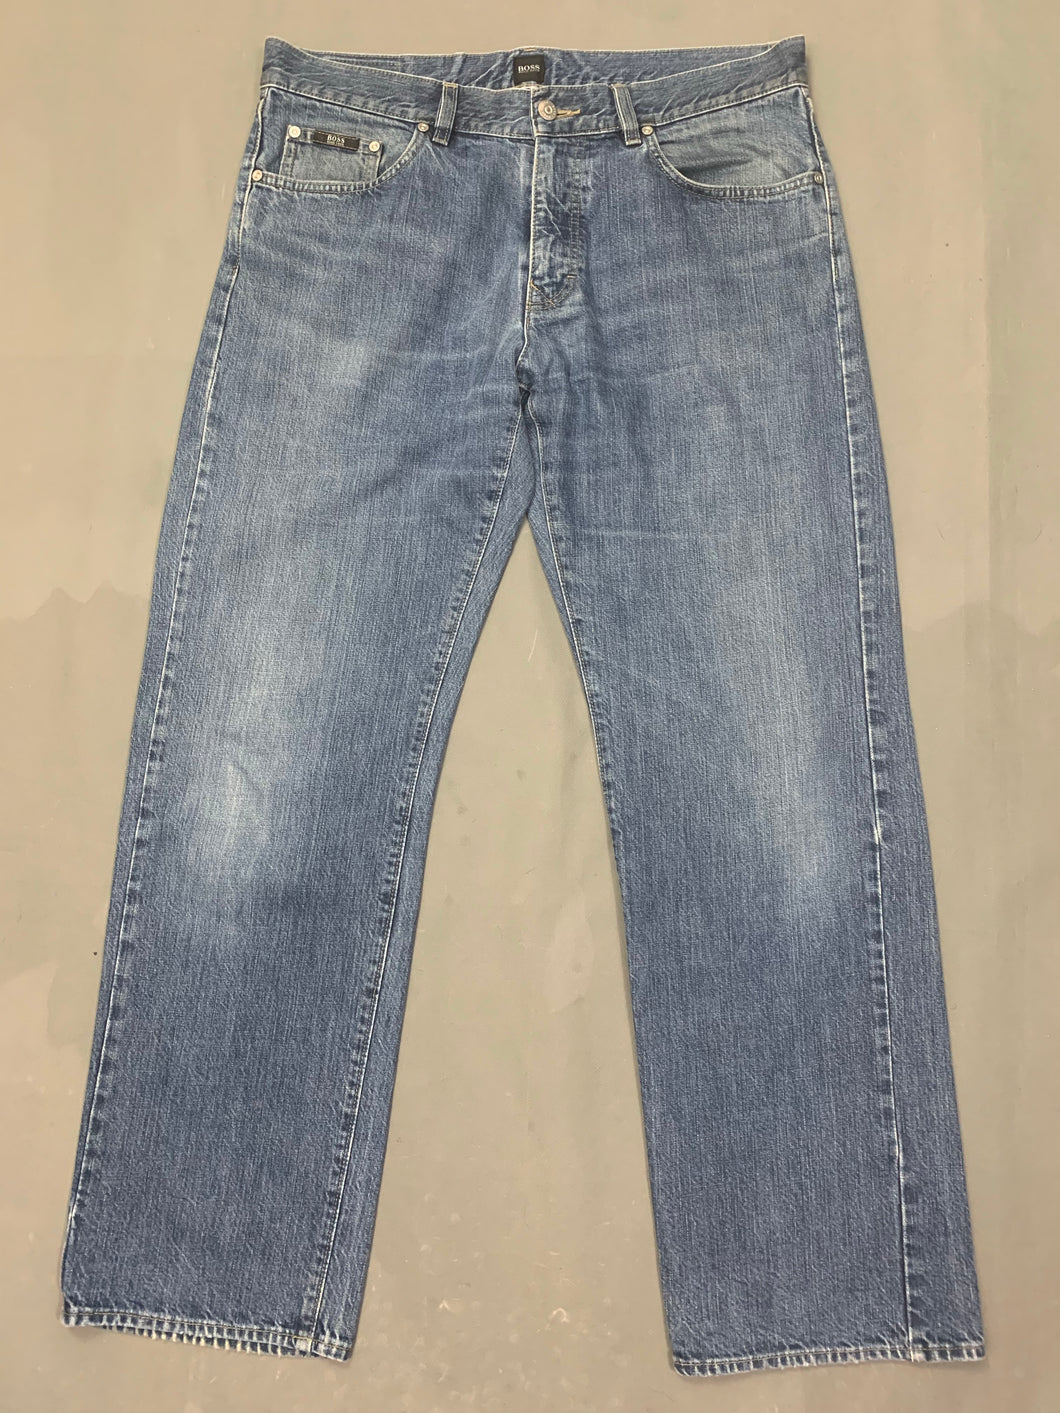 HUGO BOSS Mens ARKANSAS1 Blue Denim JEANS Size Waist 36